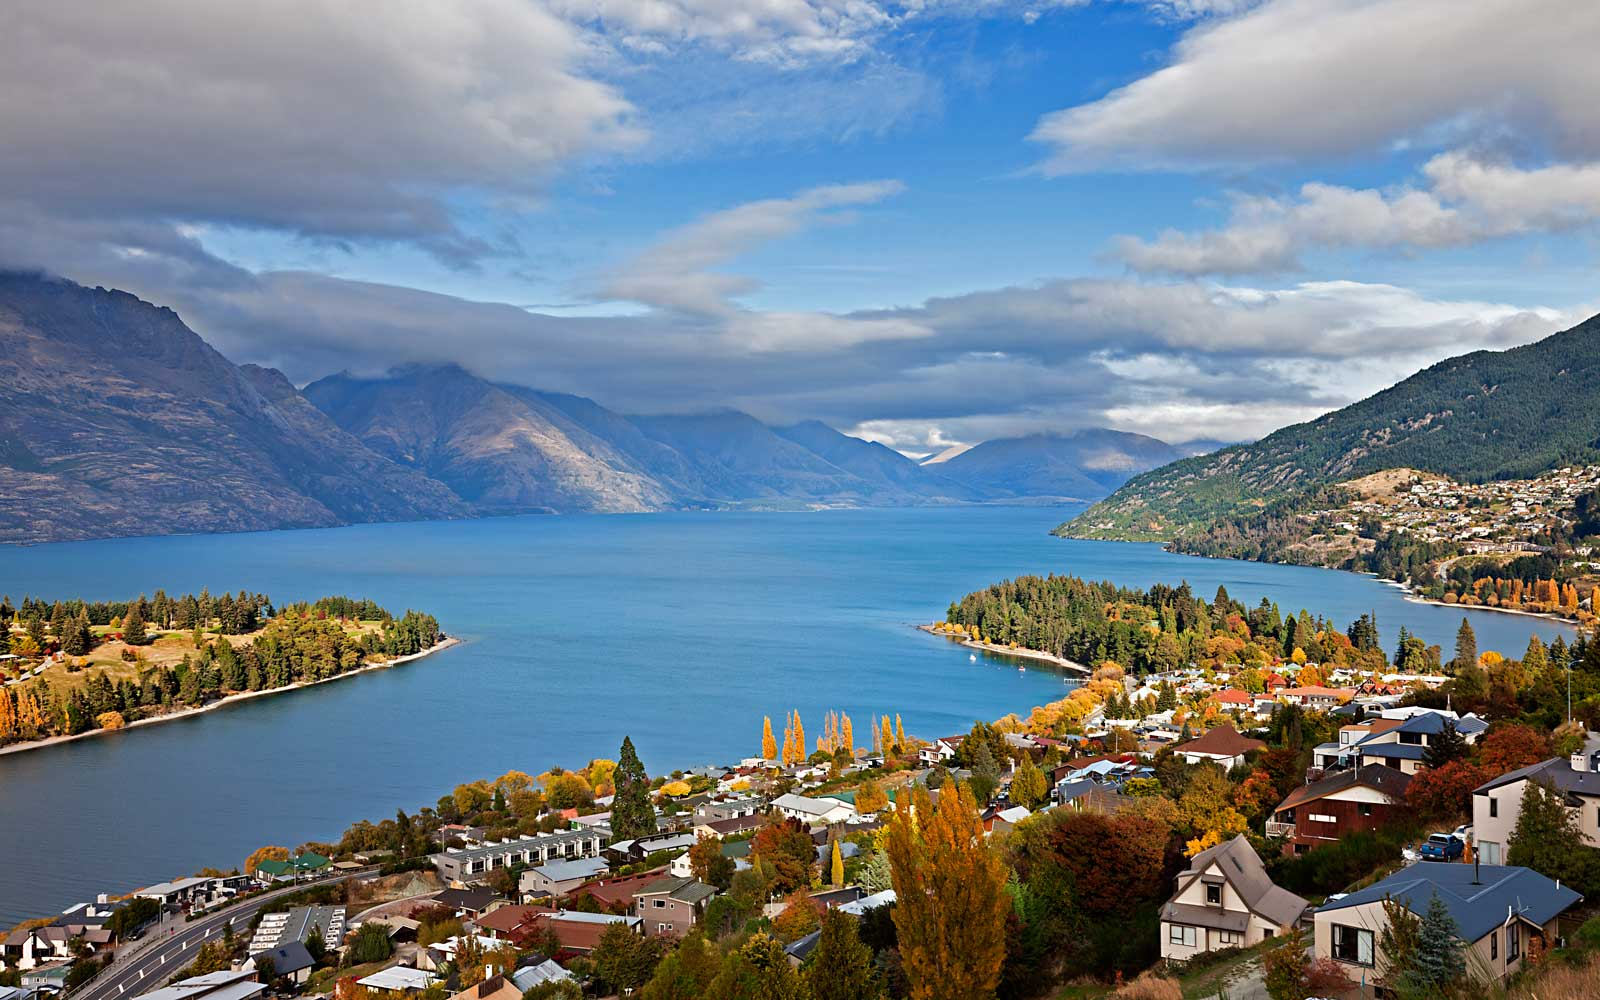 View over lake Wakatipu at Queenstown, Otago, South Island, New Zealand